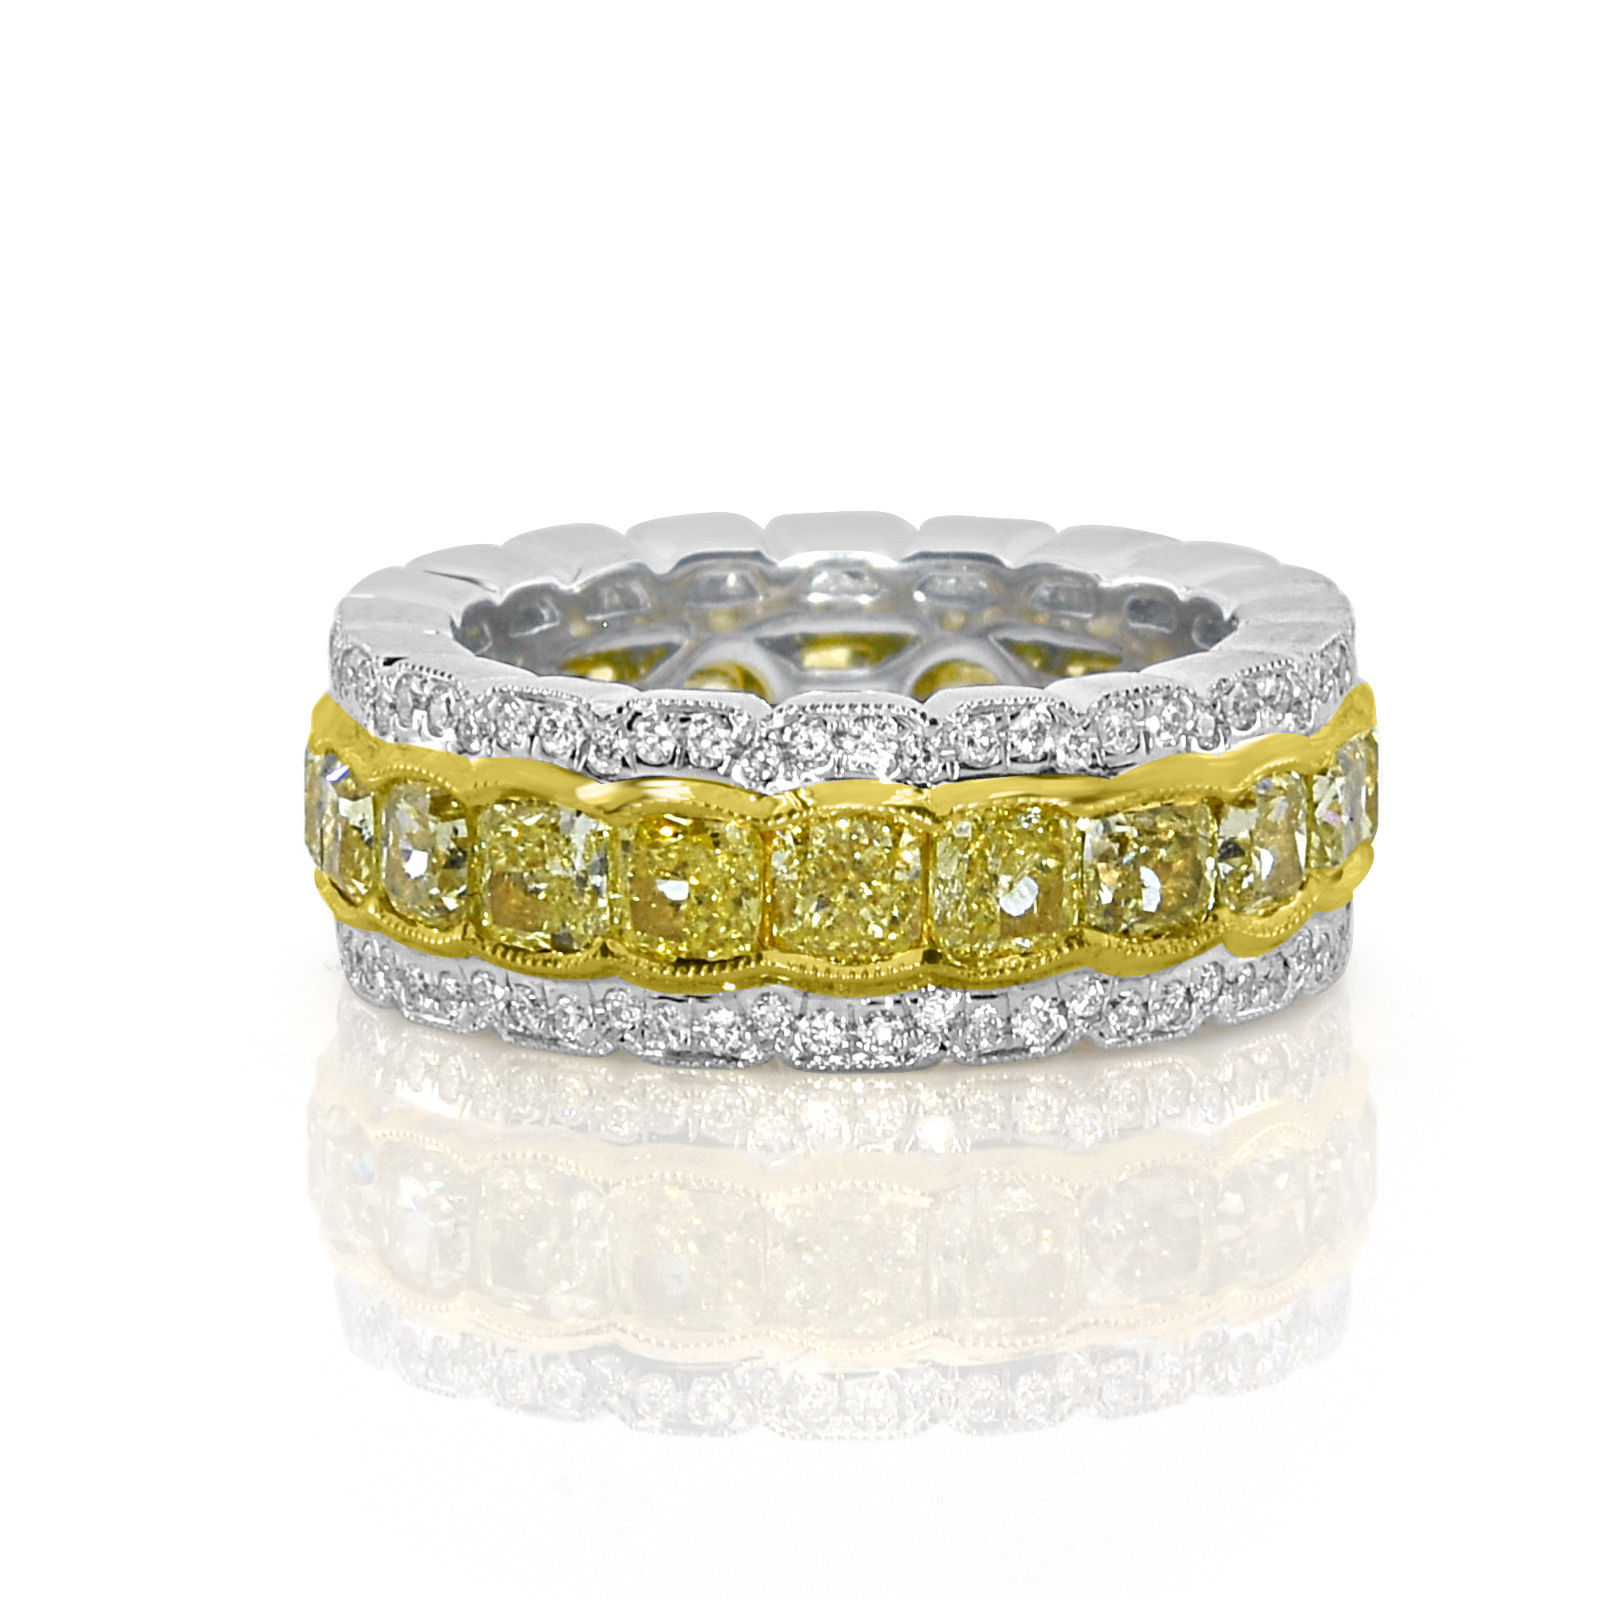 Real 6.43ct Natural Fancy Yellow Diamonds Engagement Ring 18K Solid Gold